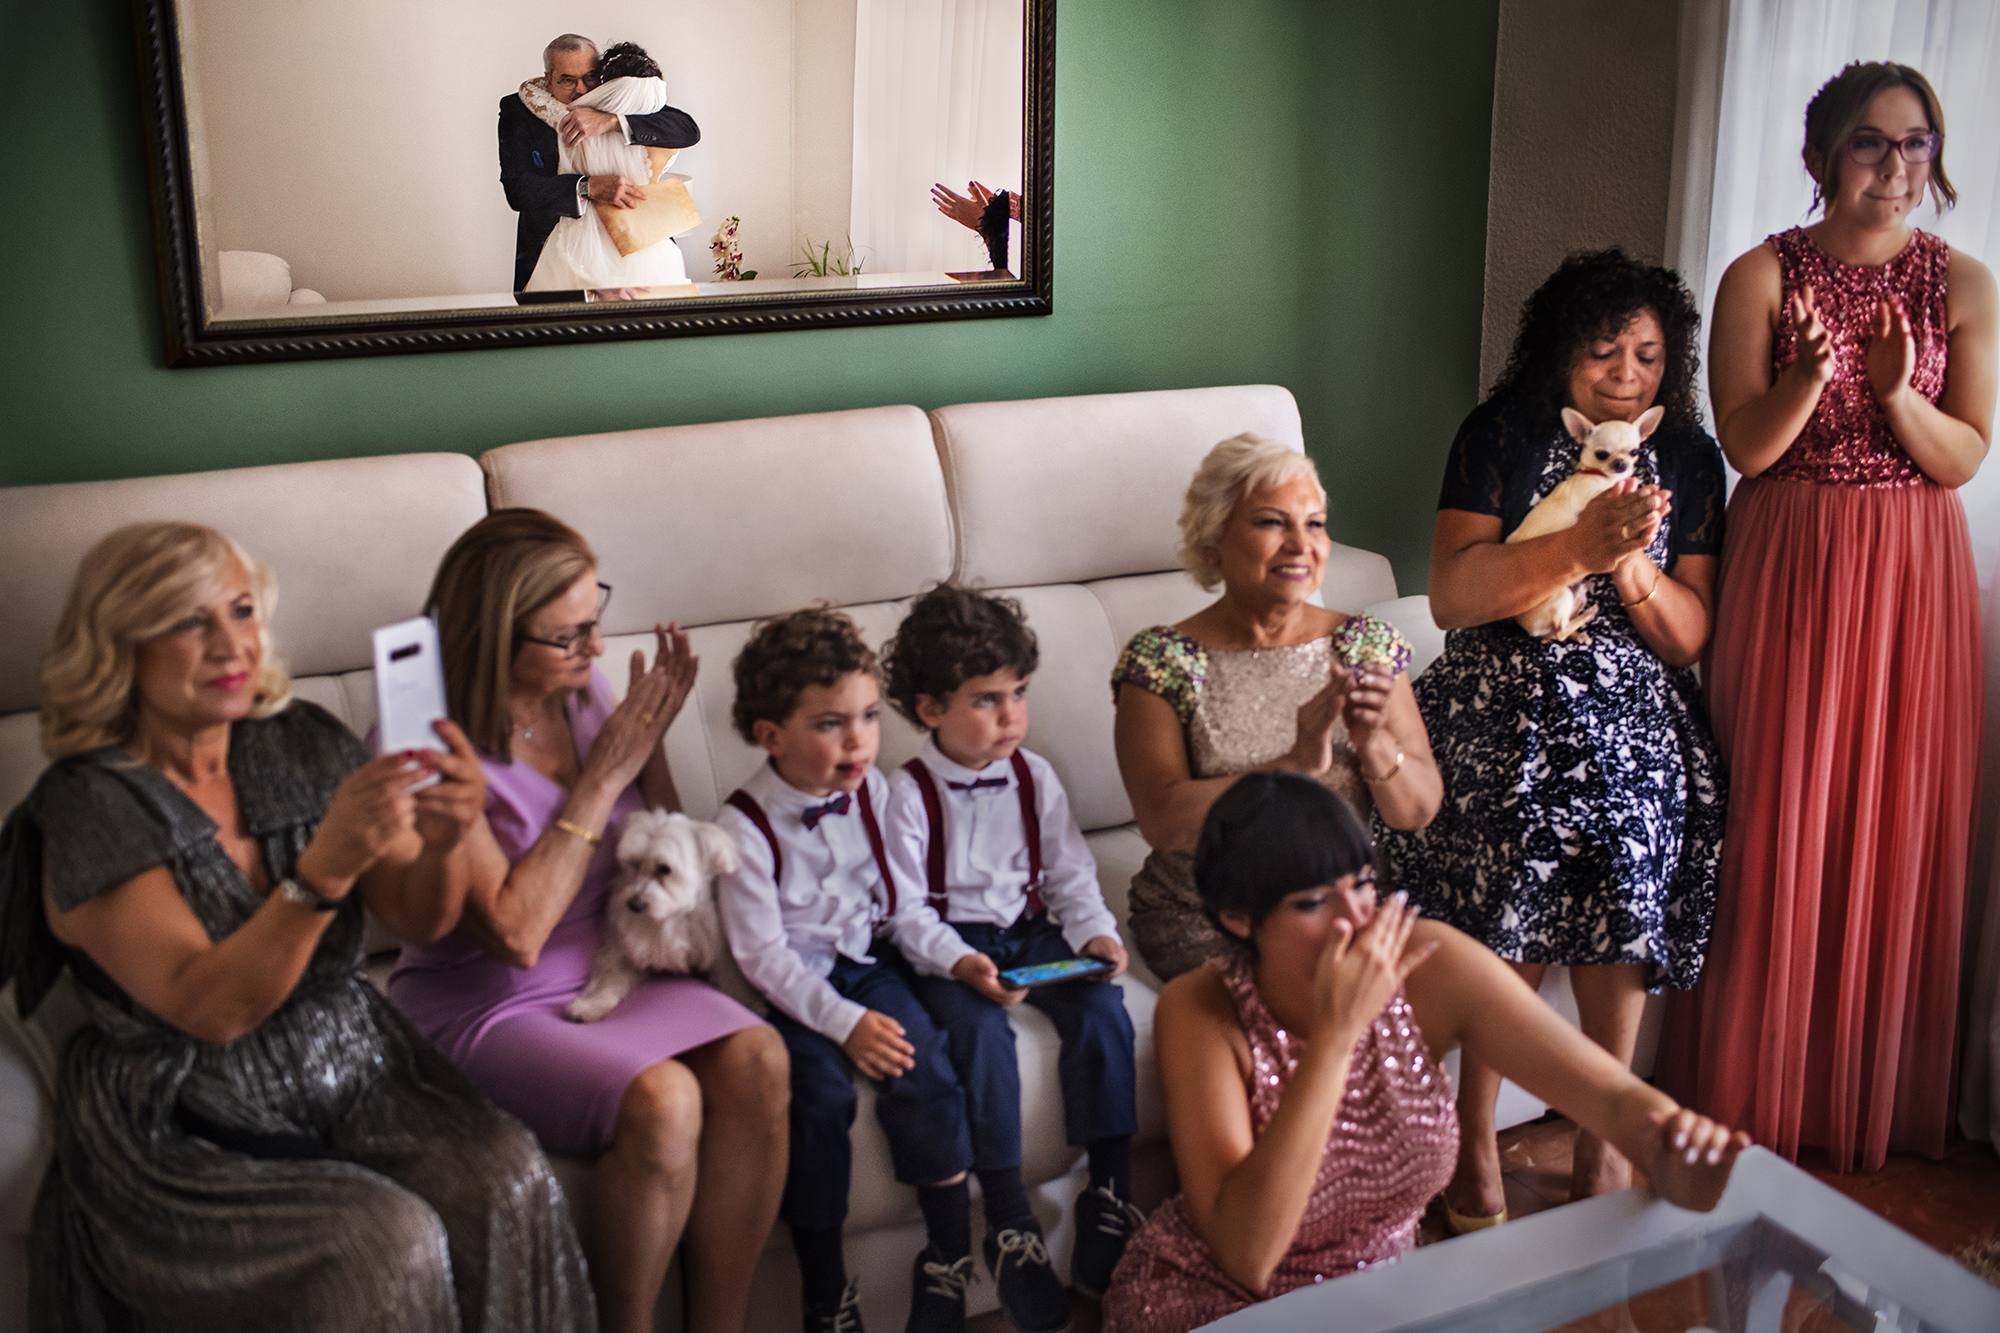 layered-composition-mirror-reflection-bride-and-dad-moment-with-family-worlds-best-wedding-photos-victor-lax-spain-wedding-photographers